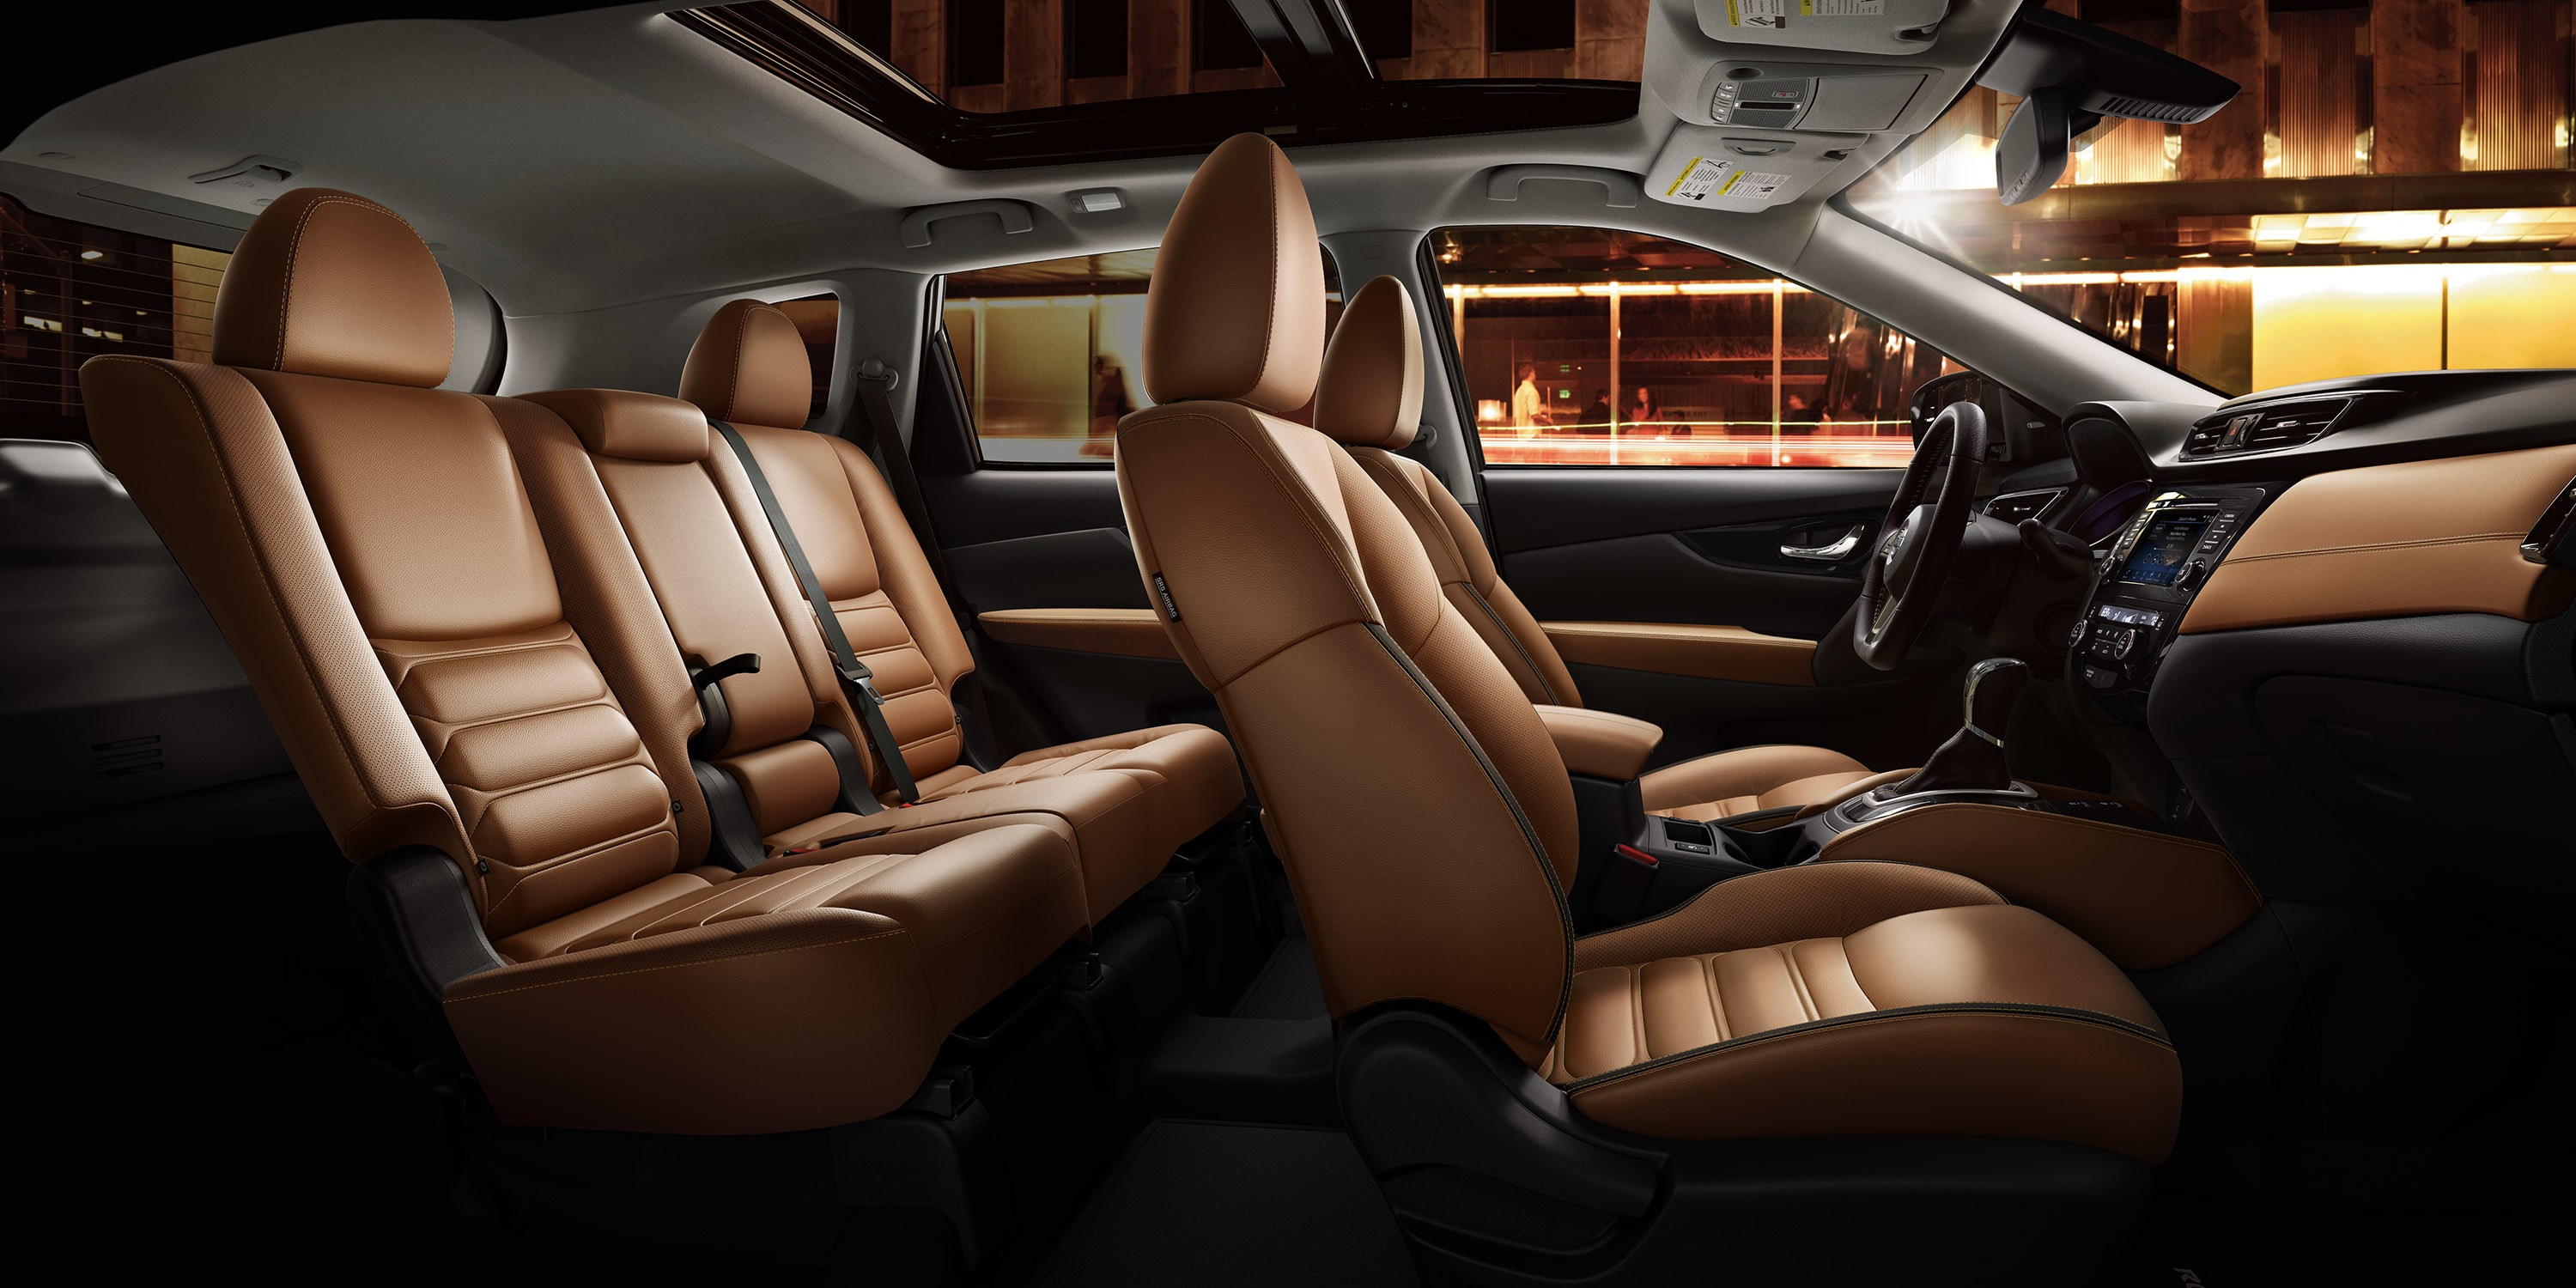 Seating for Everyone in the Rogue